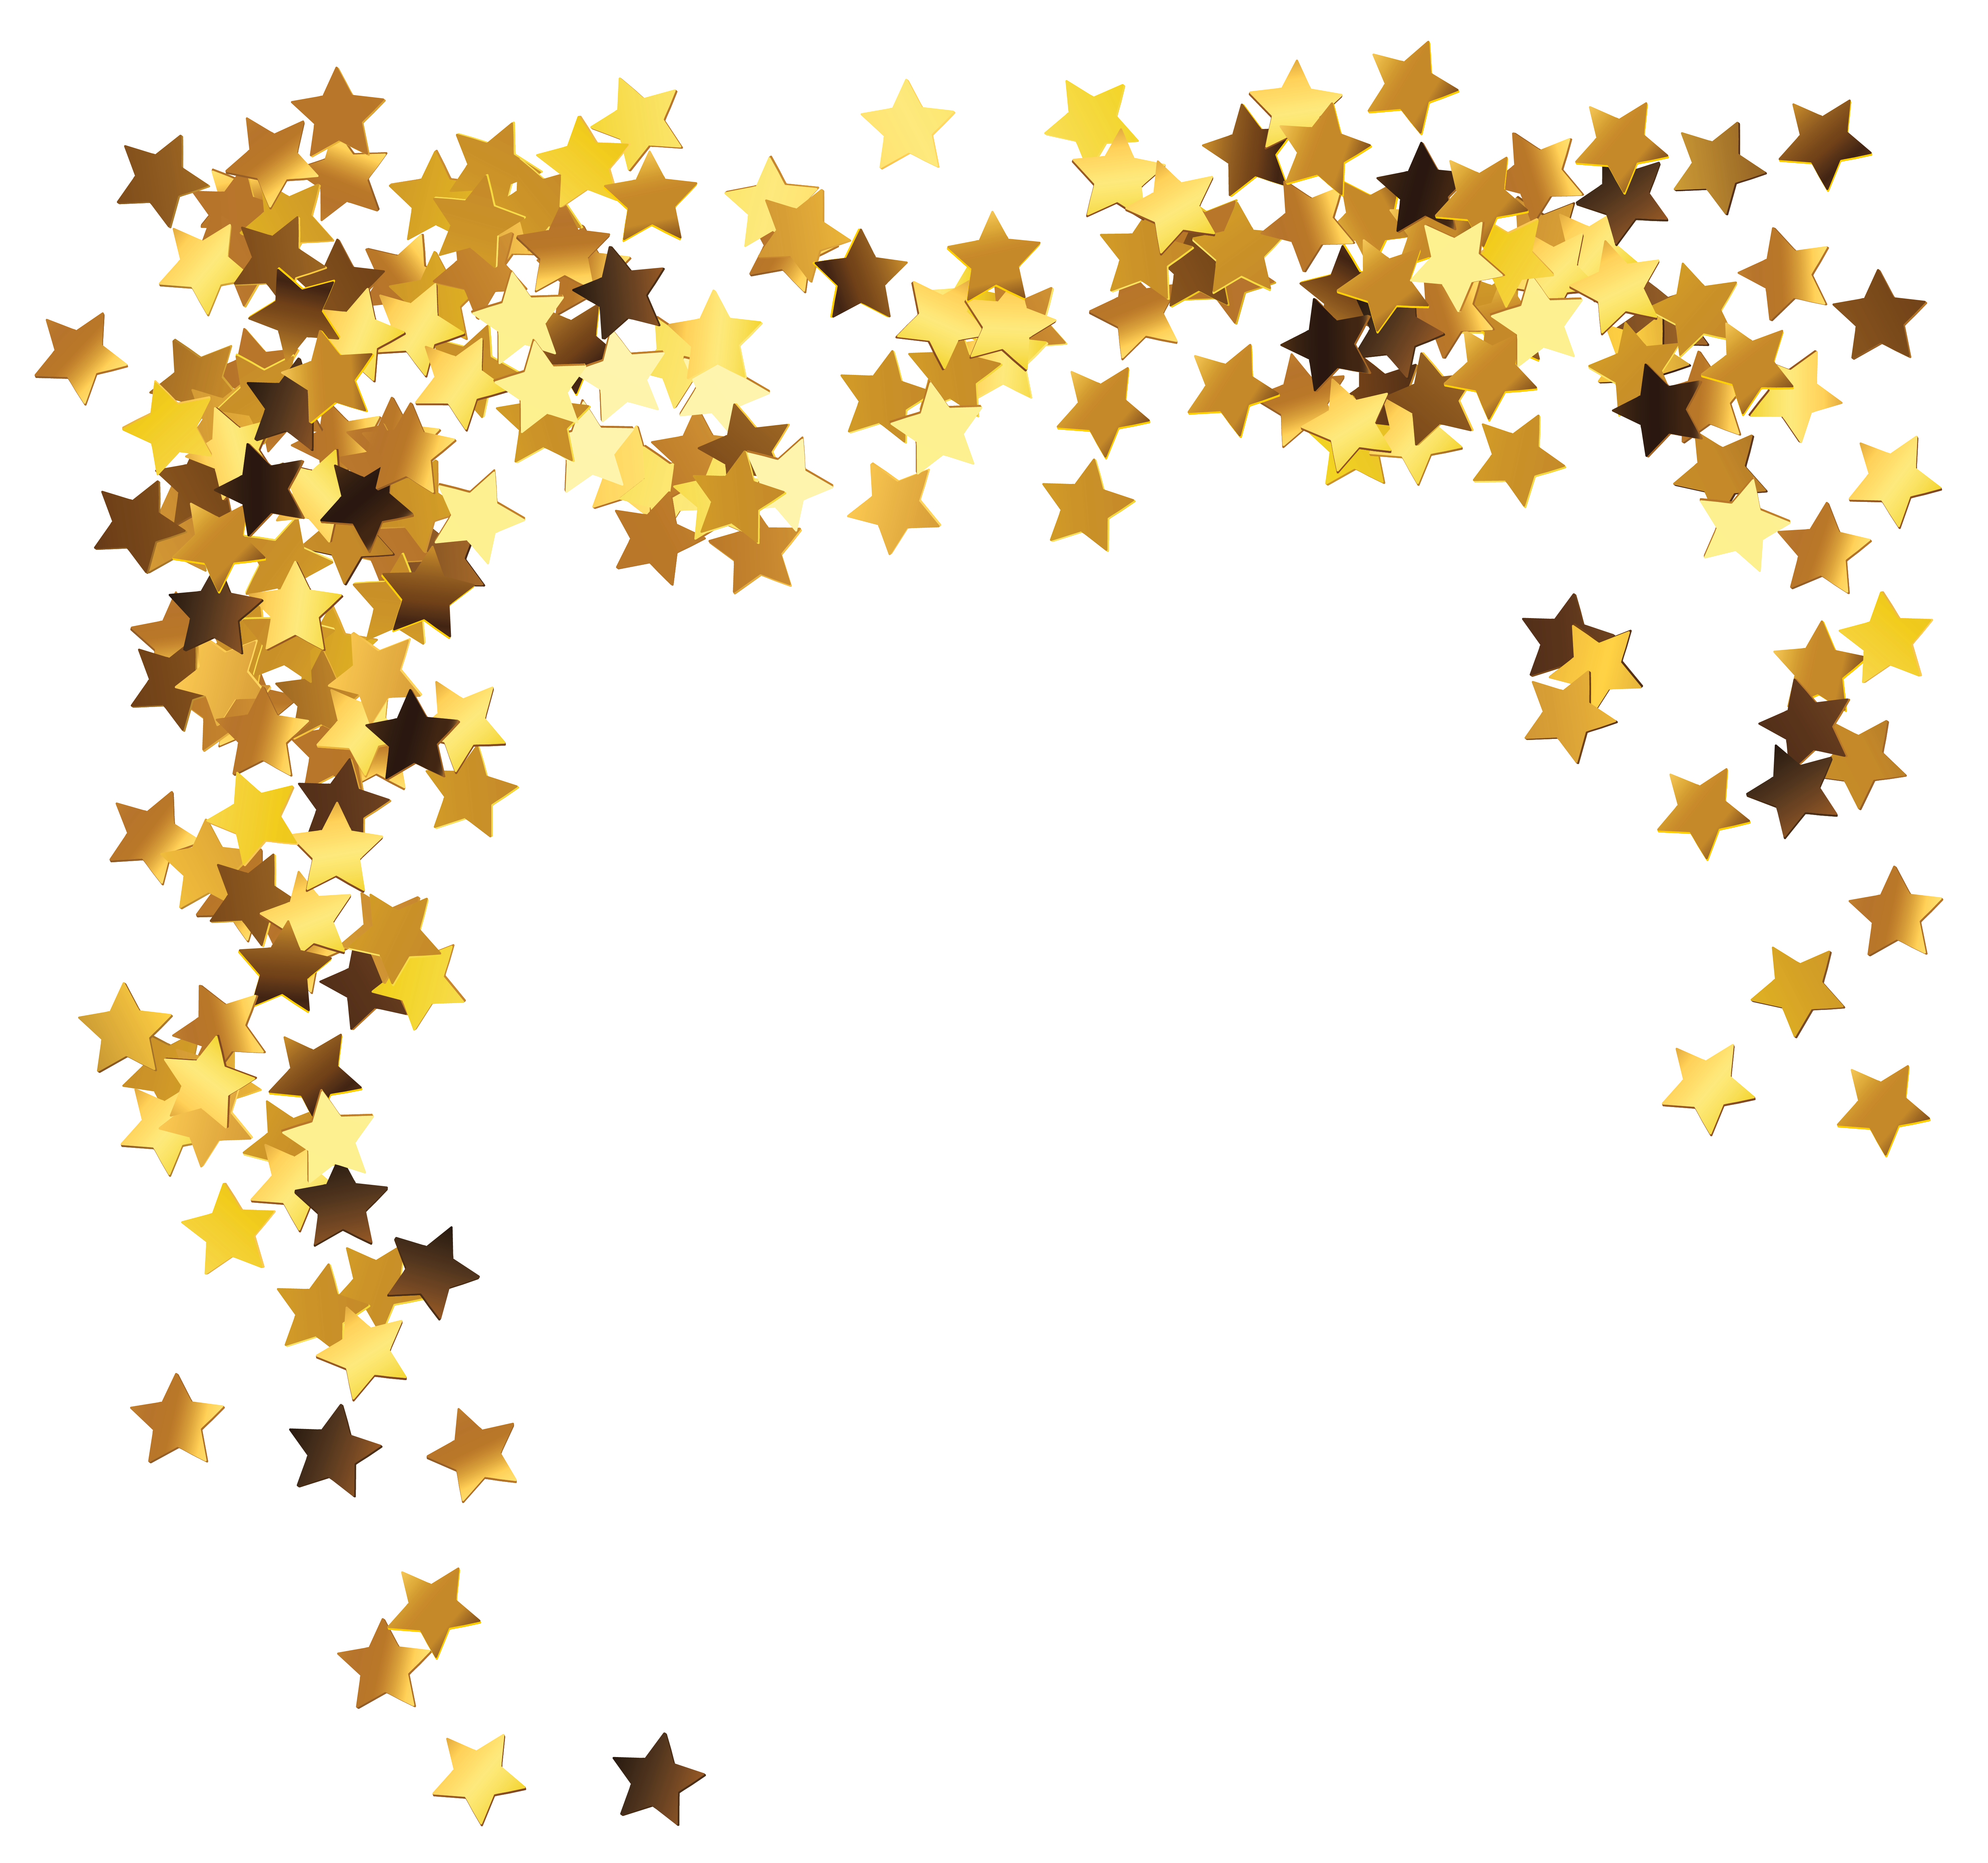 jpg  collection of gold. Clipart stars borders